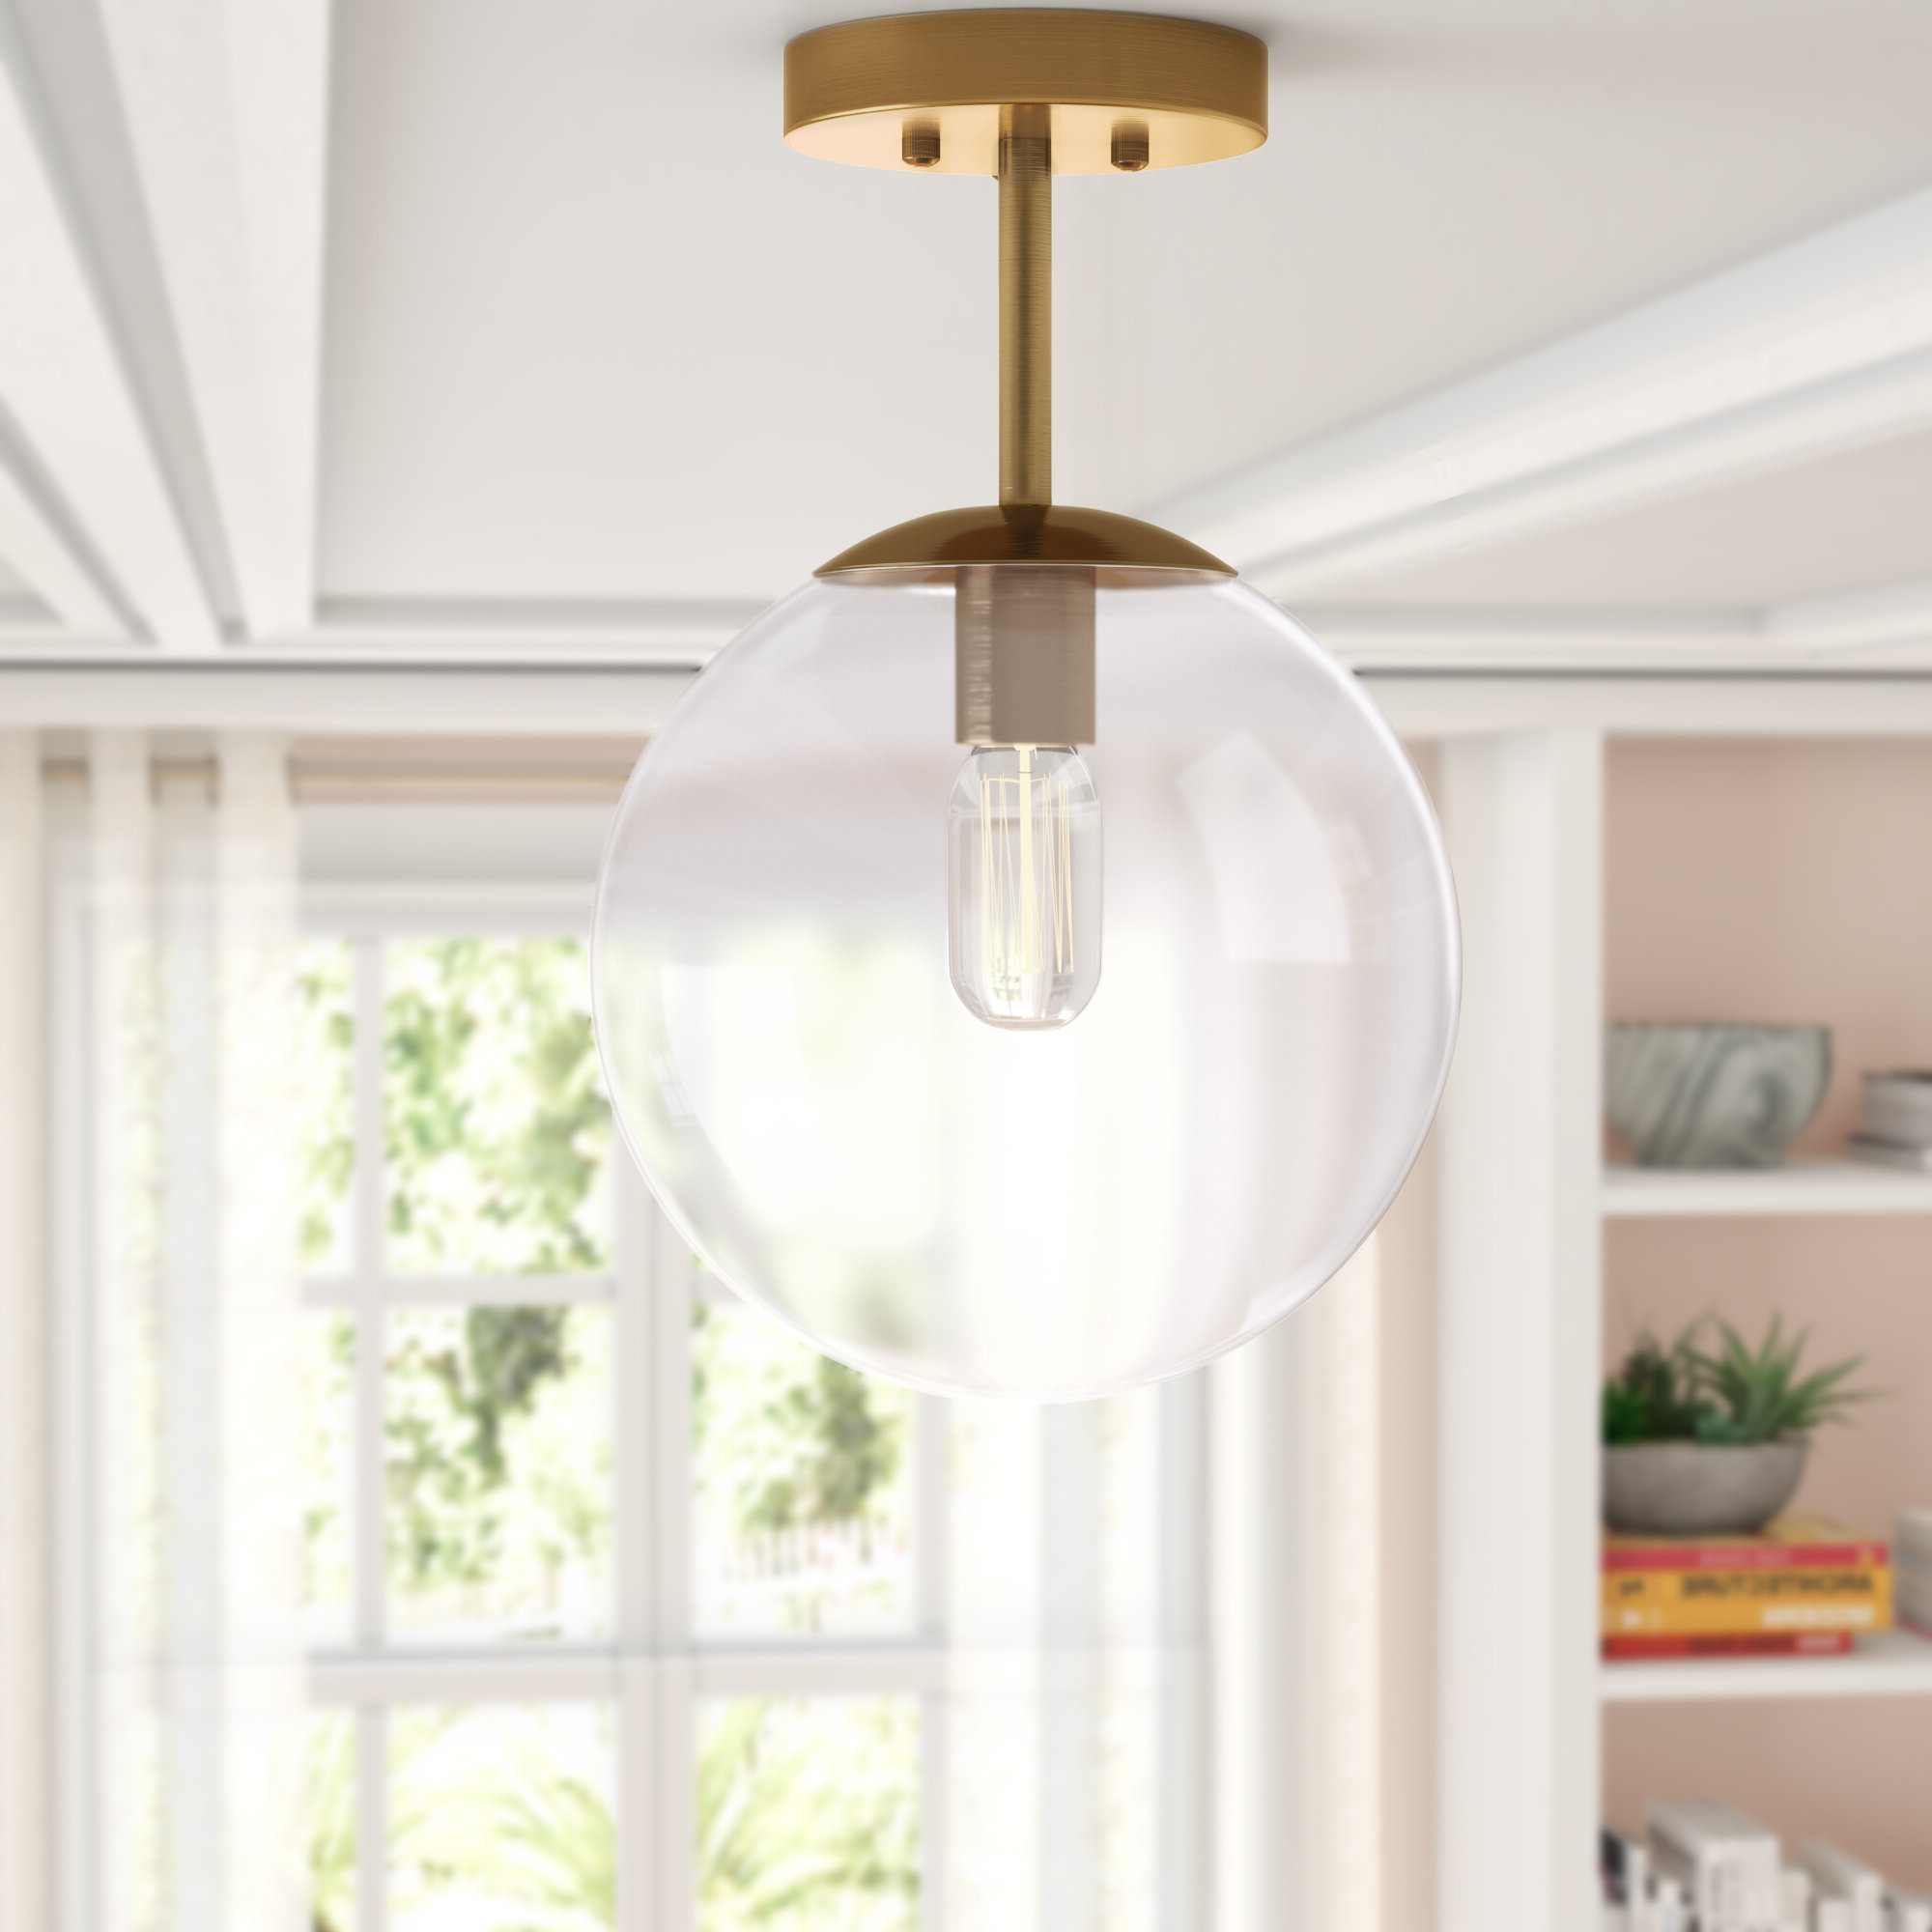 Best And Newest Cournoyer 1 Light Globe Pendant With Regard To 1 Light Globe Pendants (View 8 of 20)